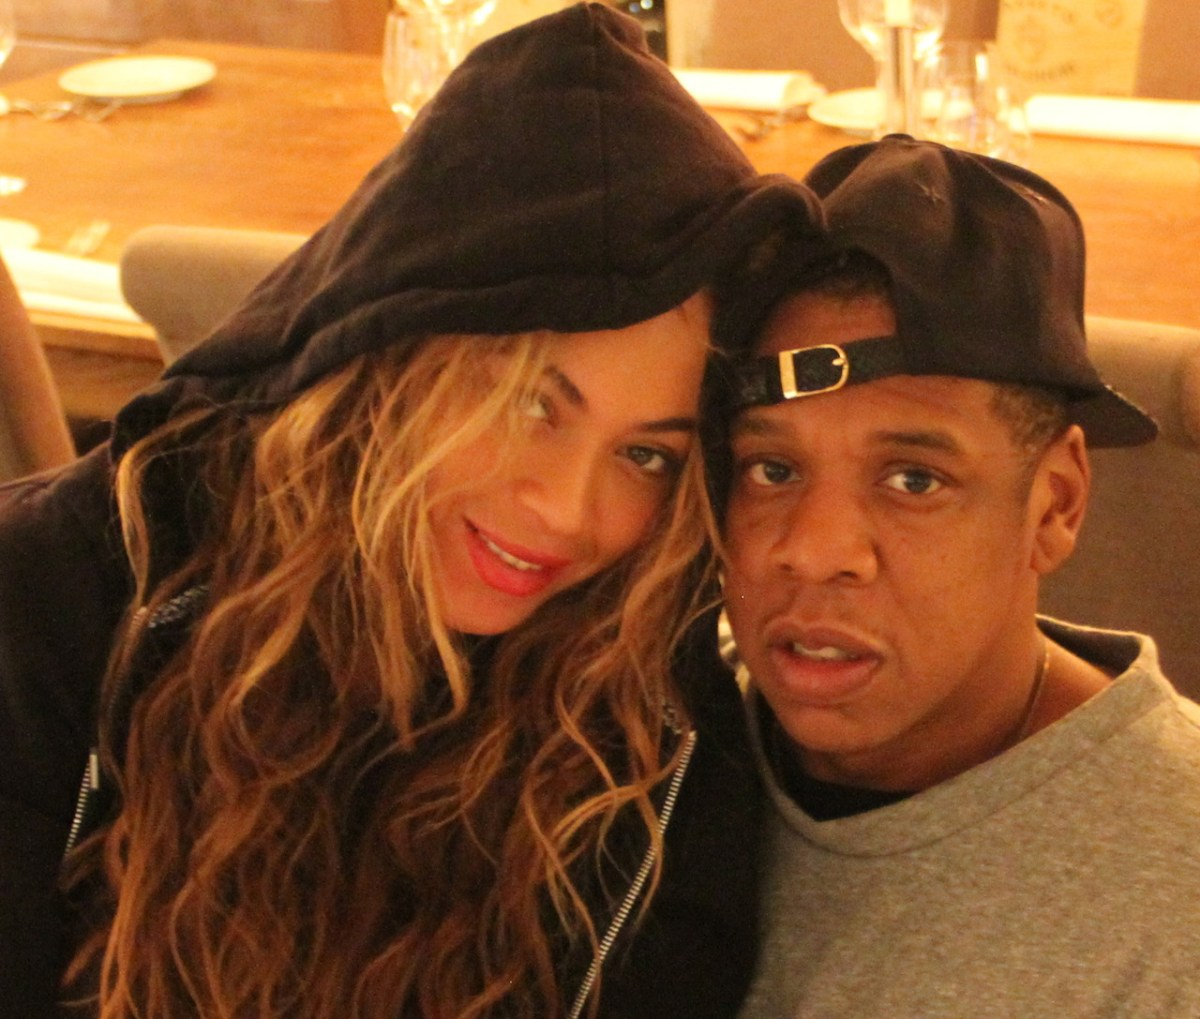 Beyoncé Takes A Selfie With Jay-Z and Dispels Pregnancy Rumors Once and For All